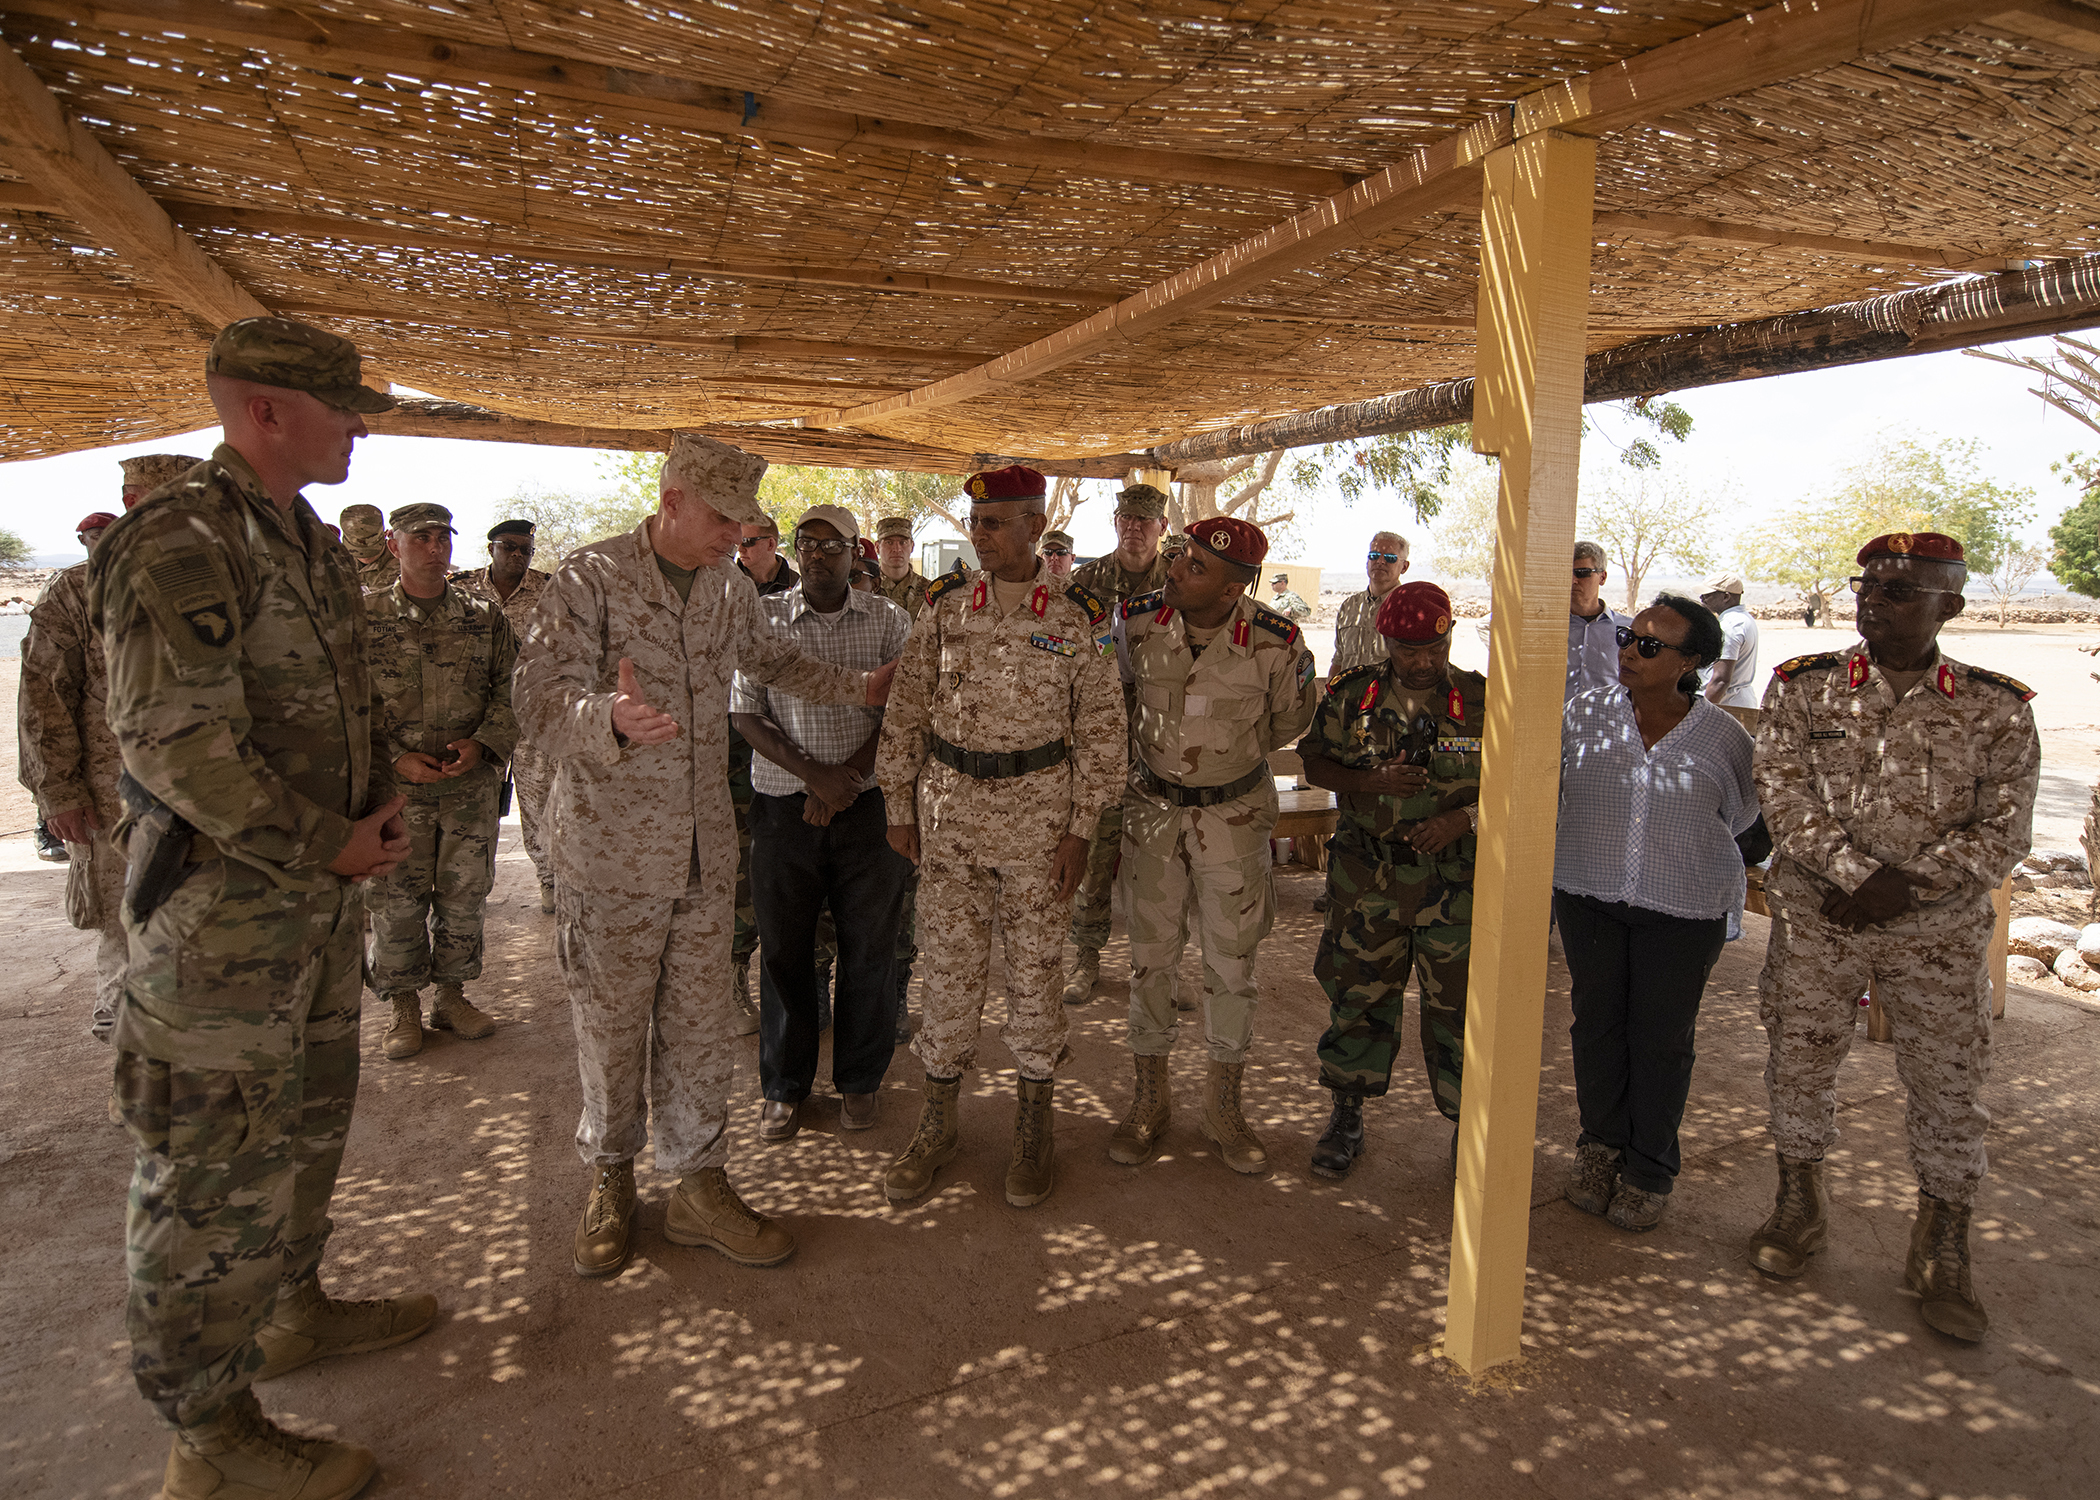 U.S. Marine Corps Gen. Thomas D. Waldhauser, left center, commander of U.S. Africa Command, comments on a brief about partner training delivered bythe officer in charge of NCO training for the Rapid Intervention Battalion (RIB), U.S. Army 1st Lt. Travis Holihan, Headquarters Company, 1-26 Infantry Battalion, 2nd Brigade Combat Team, 101st Airborne, assigned to Combined Joint Task Force-Horn of Africa, during a visit with senior Djiboutian officials, including Chief of General Staff of the Djibouti Armed Forces Zakaria Cheik Ibrahim, at a training base in Djibouti, March 21, 2019. While in Djibouti, Waldhauser observed the ongoing growth and development of the RIB, the Djiboutian army's elite military force, which the U.S. is in the process of training and equipping at the request of the Djiboutian government. (U.S. Air Force photo by Tech. Sgt. Shawn Nickel)